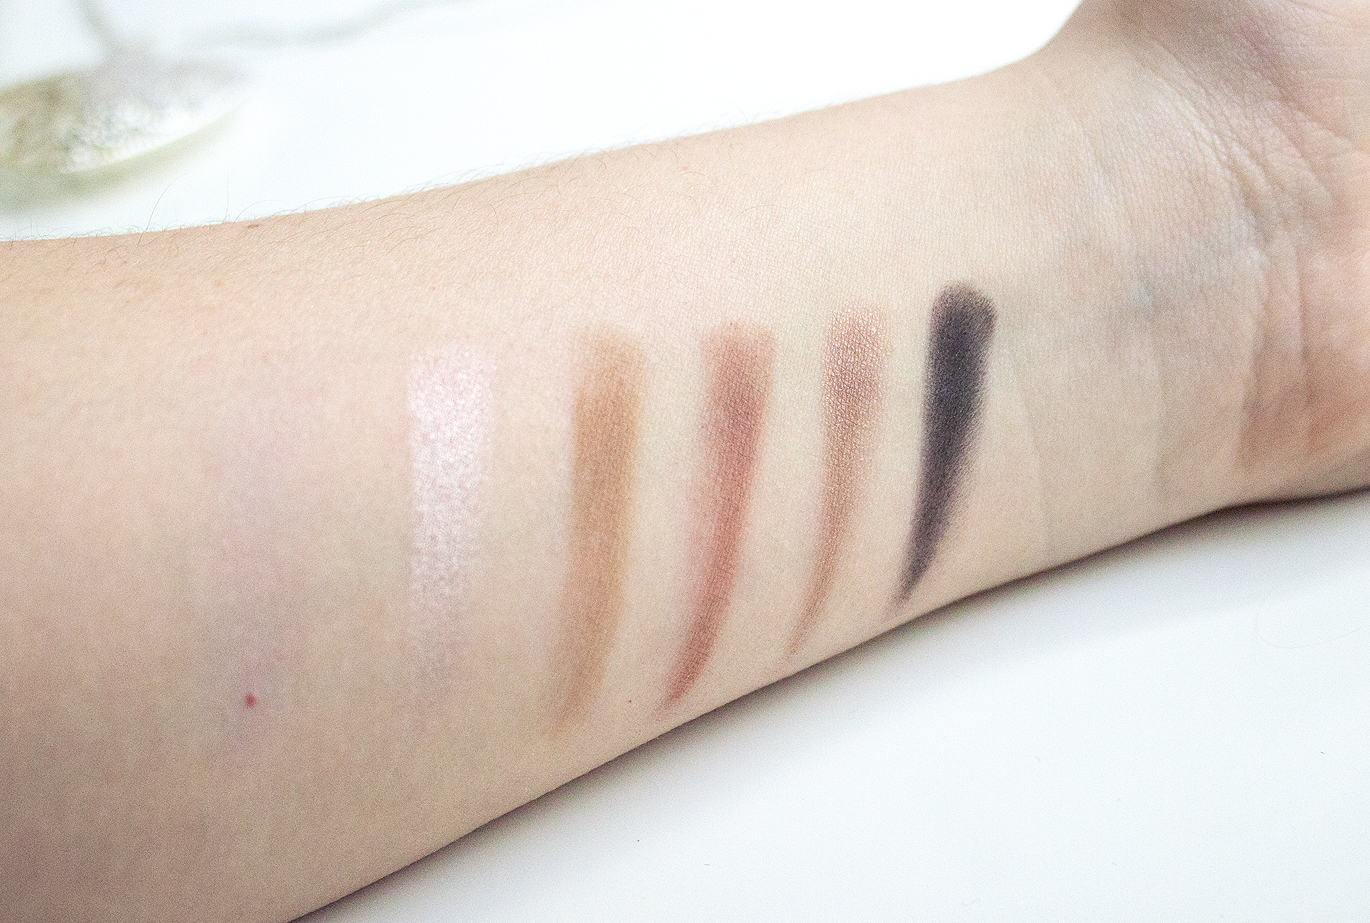 MAC Cinderella Stroke of Midnight, MAC Cinderella Stroke of Midnight Review, MAC Cinderella Stroke of Midnight Swatches, MAC Cinderella, MAC Cinderella Stroke of Midnight bbloggers